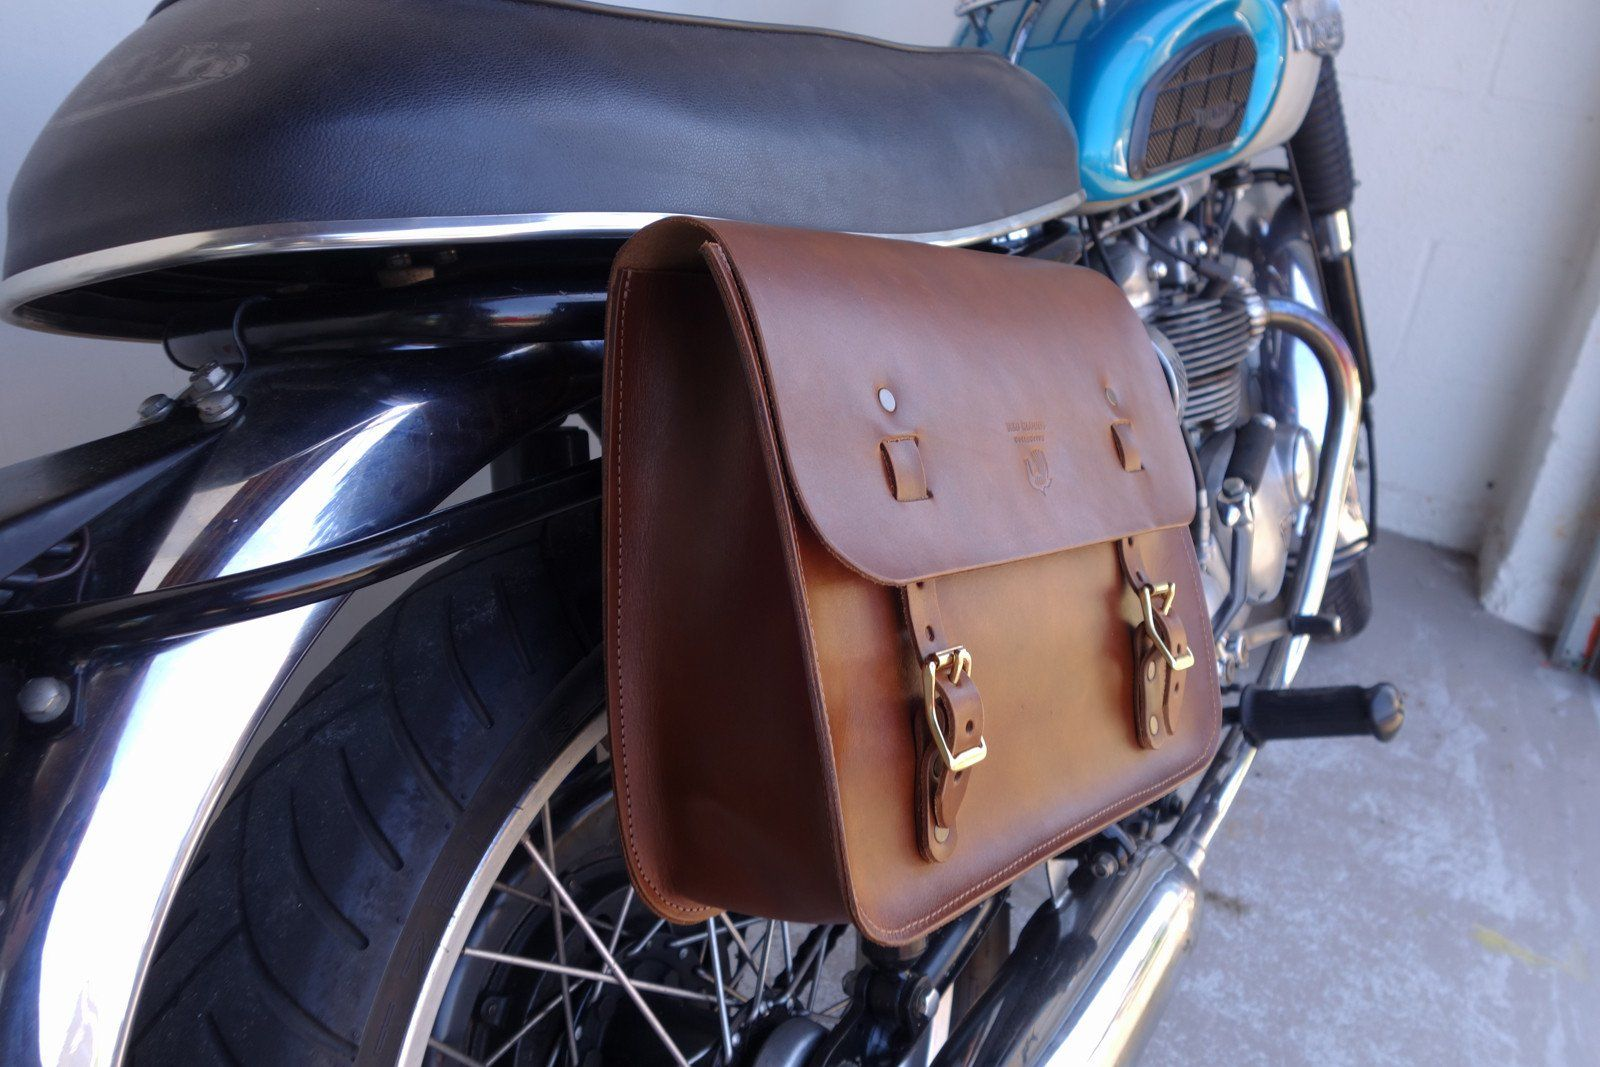 Tool bag leather heavy duty  zipper USA Made pouch motorcycle auto